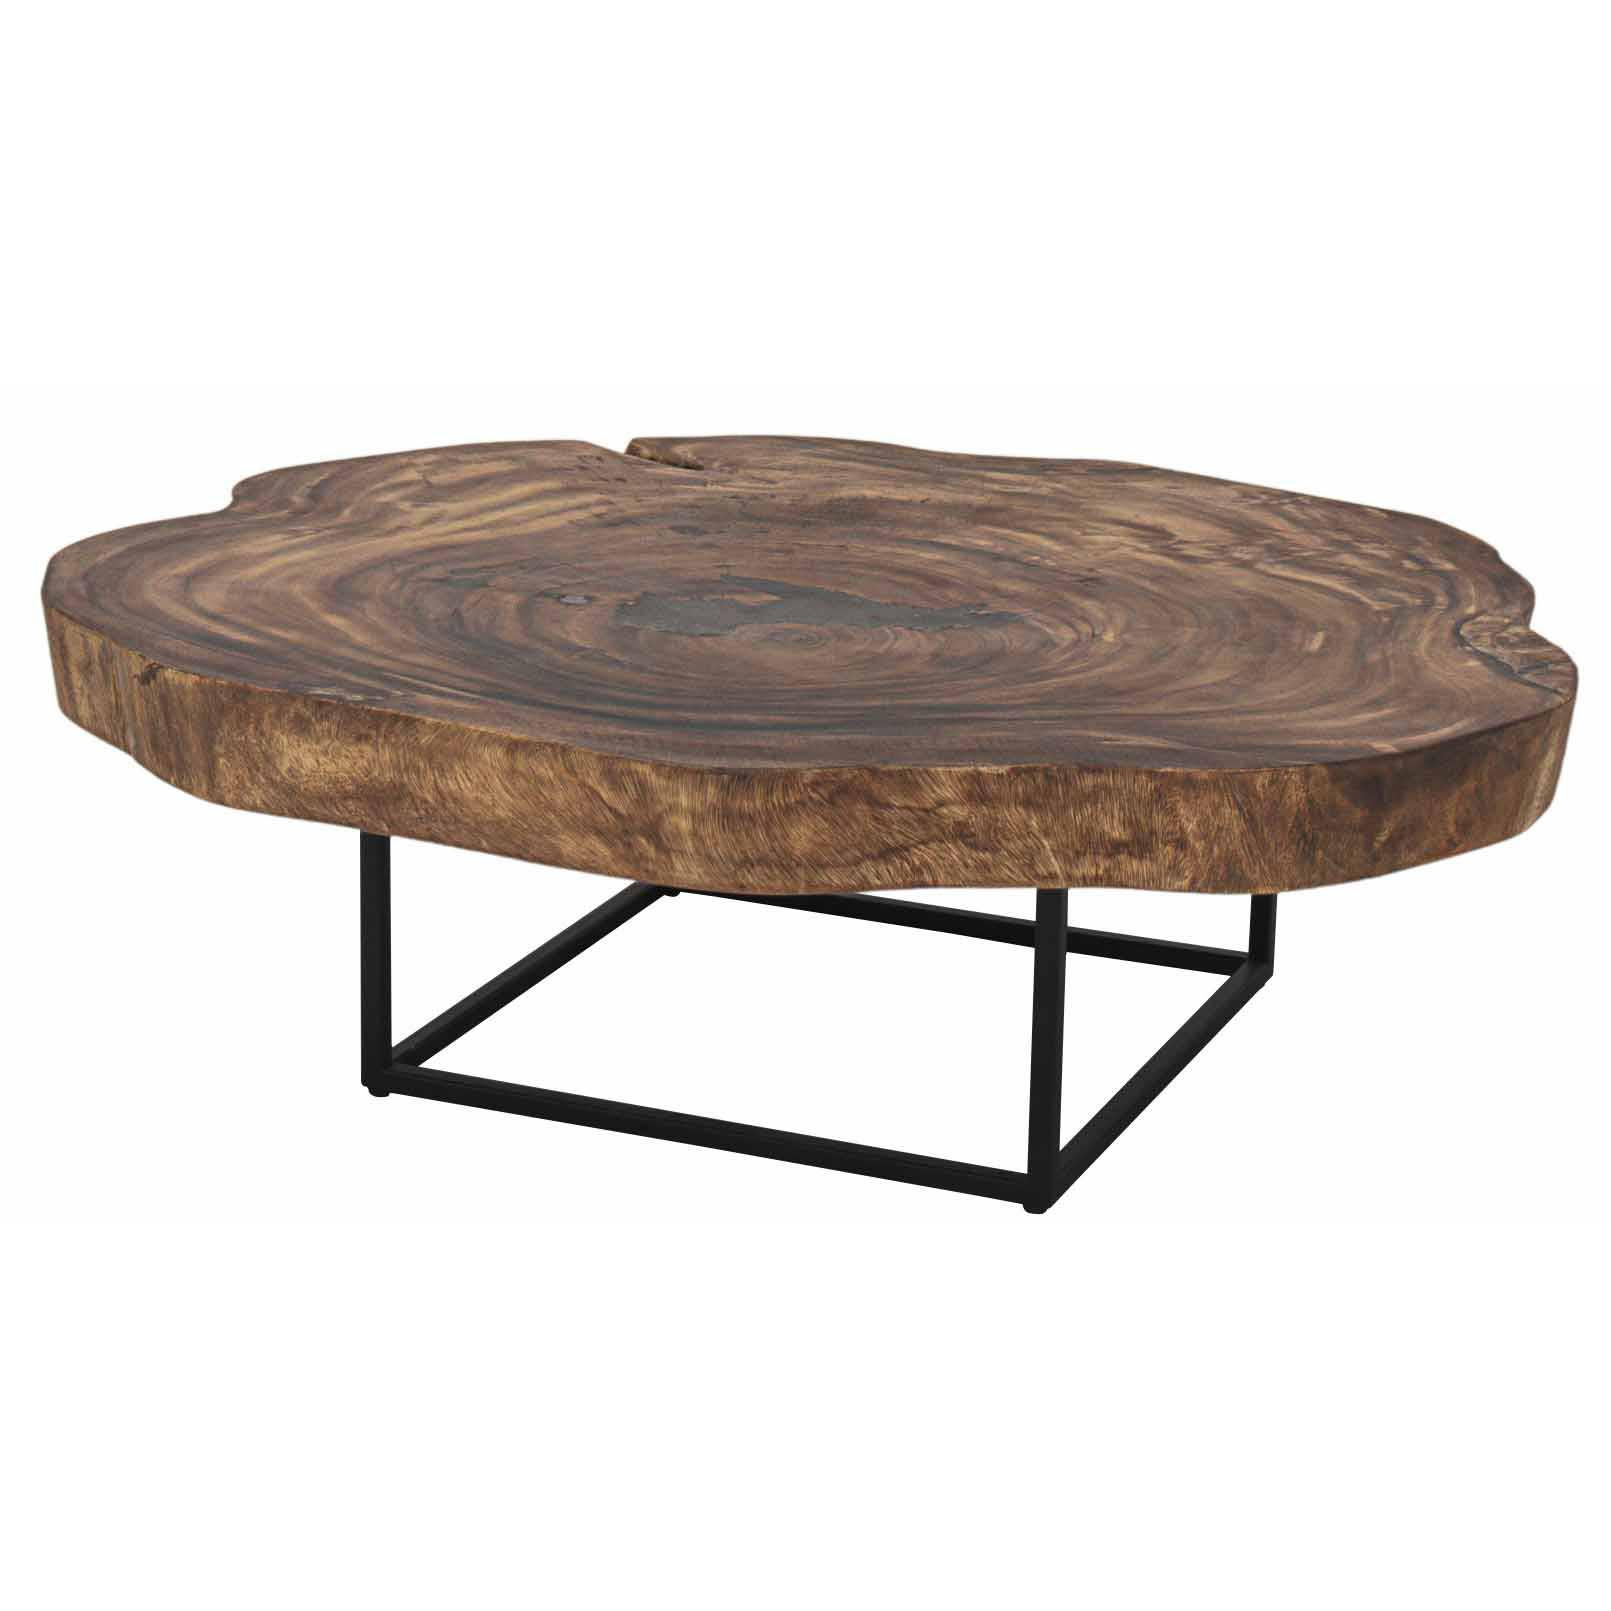 Trembesi Coffee Table Black Iron Legs Natural Boulevard Urban